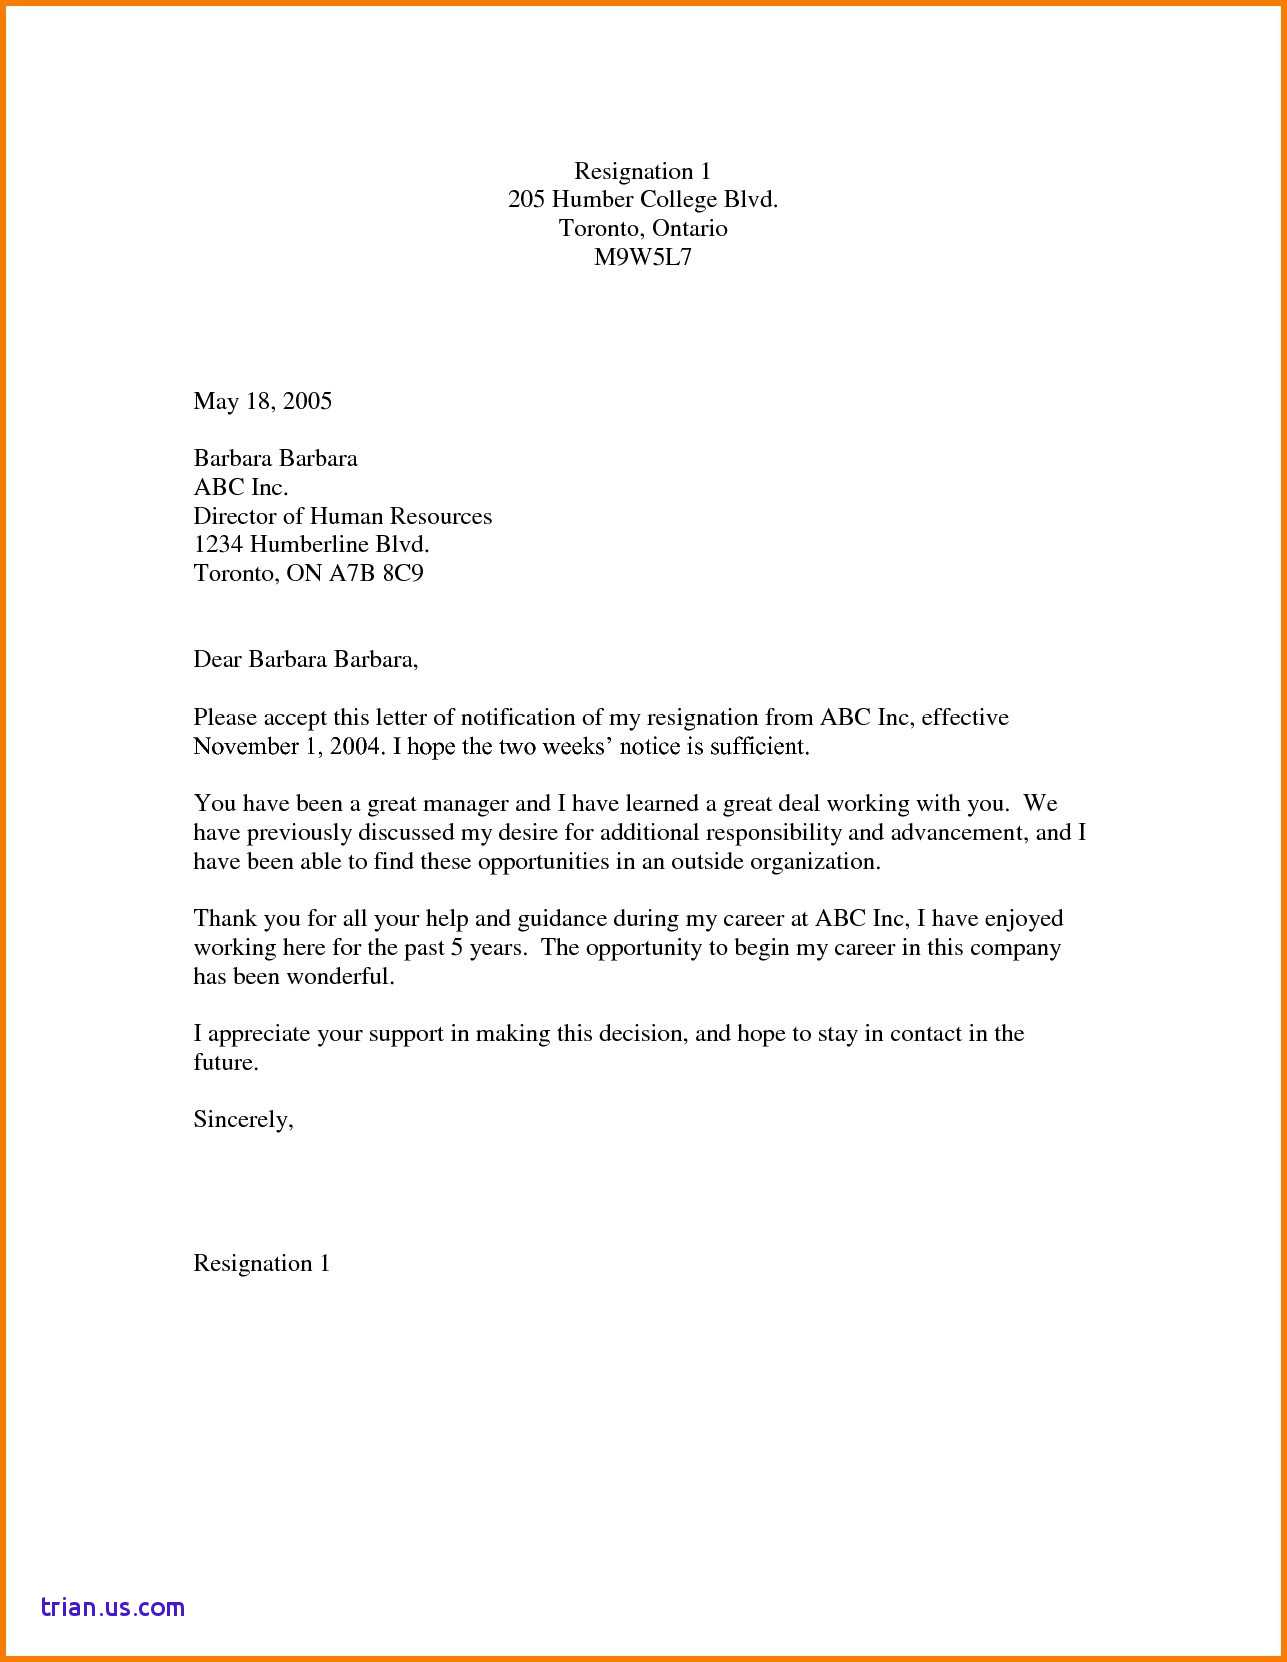 Debt Collection Template Letter Free - Business Debt Collection Letter Template New top Debt Collection